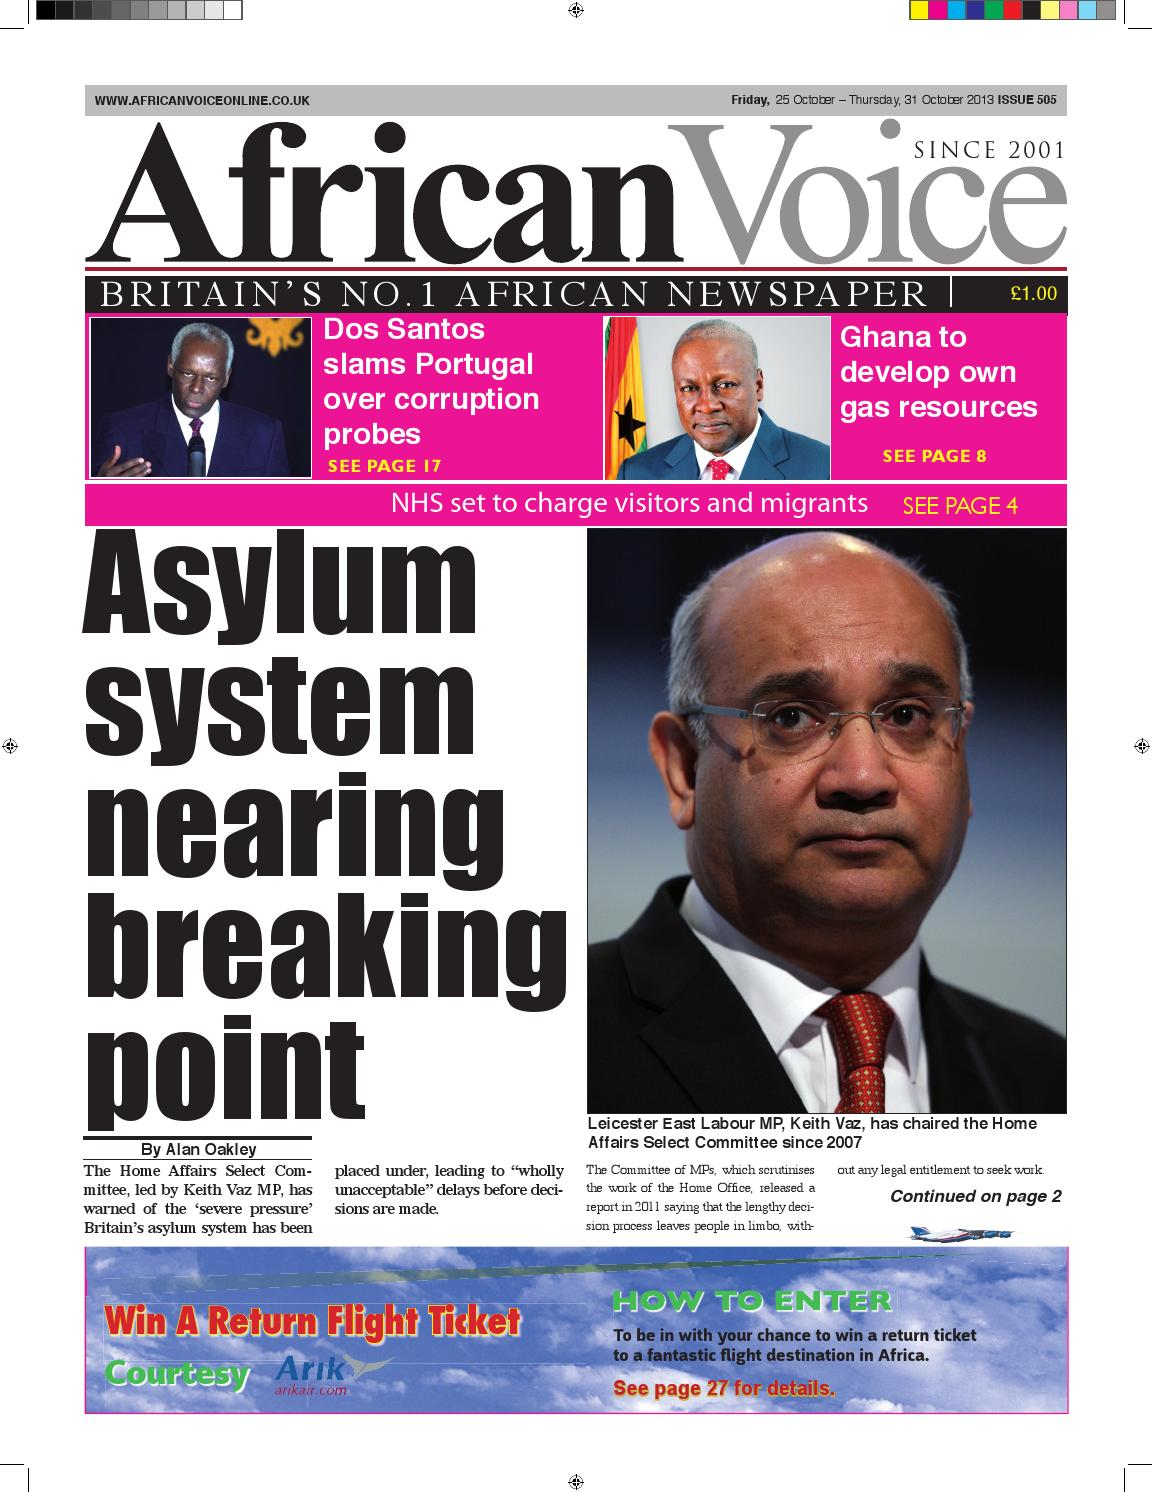 ce2095f62271 African voice 505 by African Voice Newspapers UK - issuu